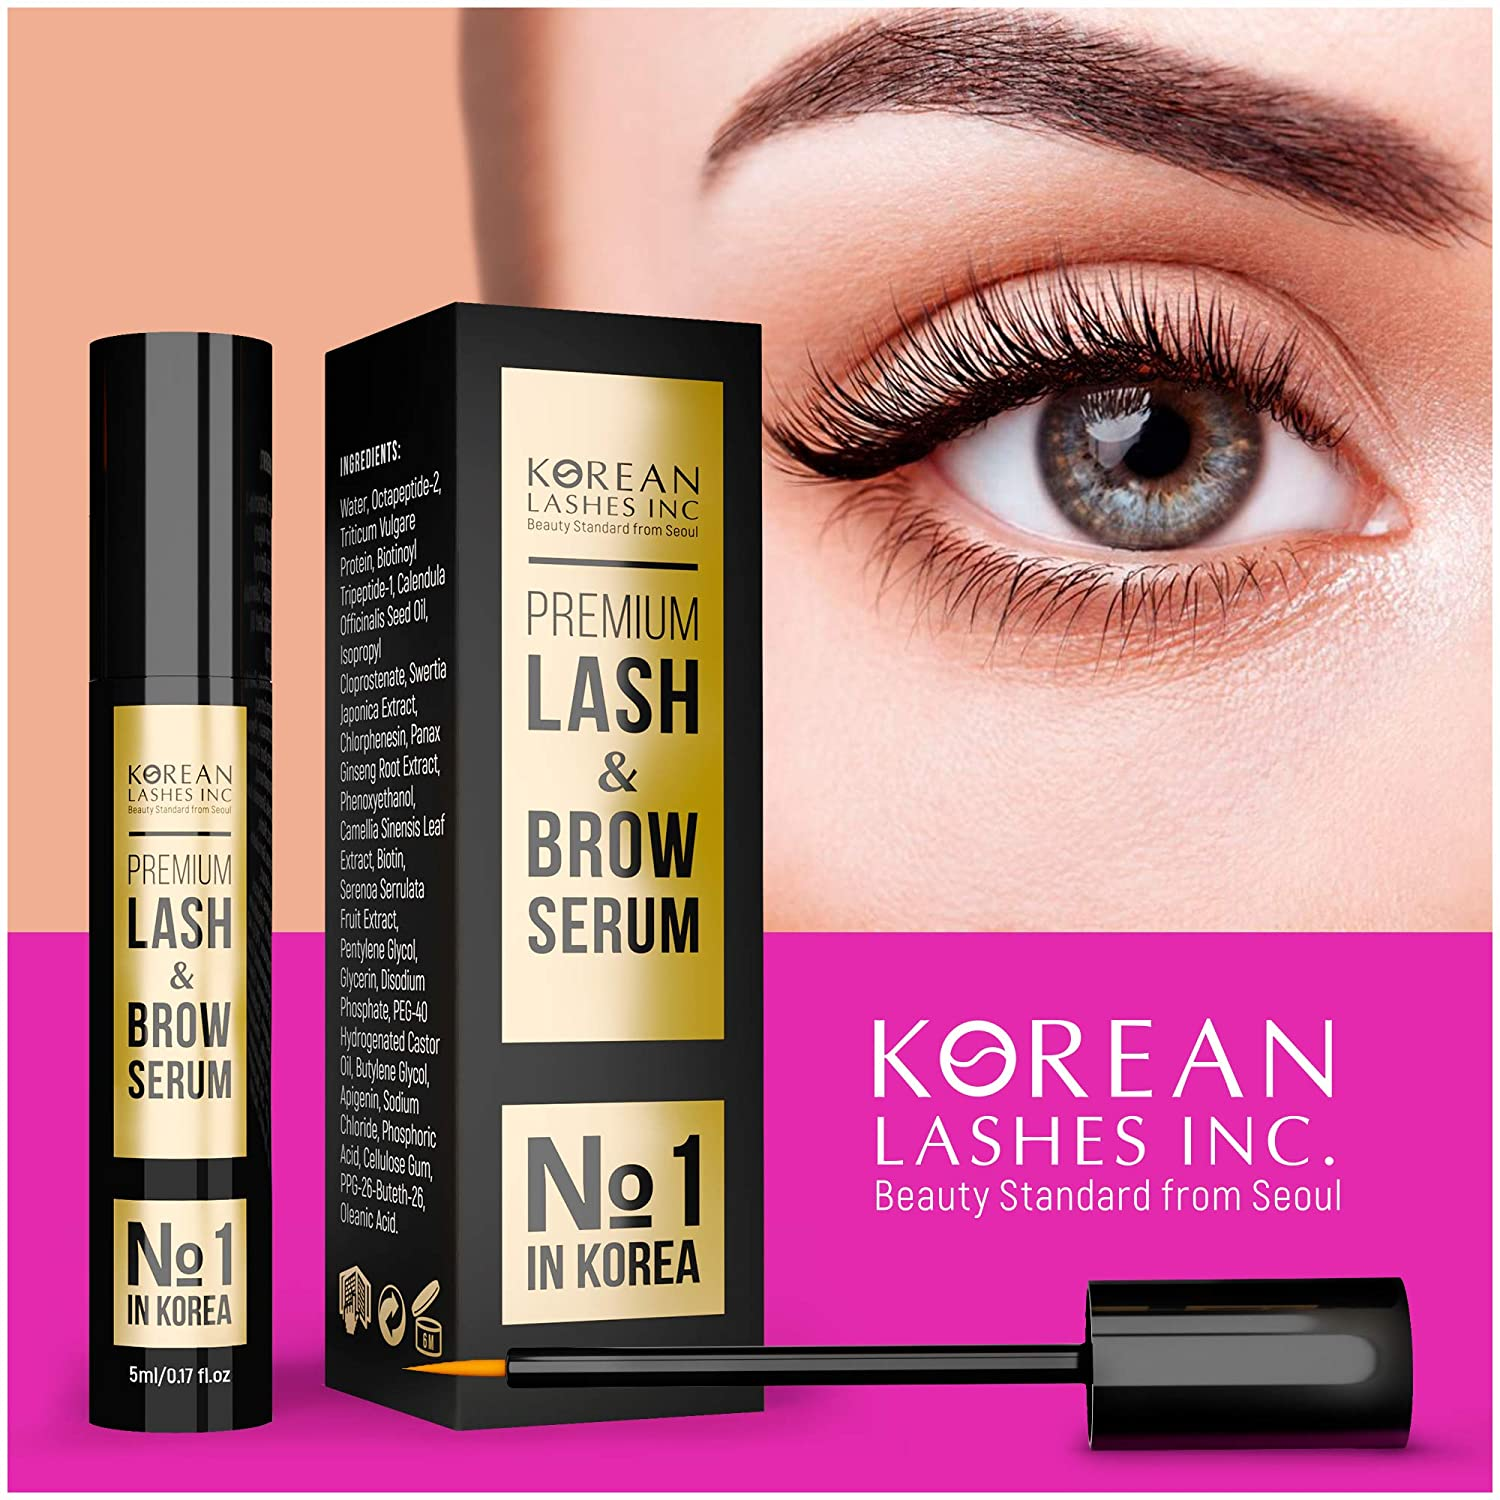 Korean №1 Eyelash & Brow Growth Enhancer Serum with Biotin & Natural Growth Tripeptides for Long, Natural, Thick Lashes & Brows - Dermatologist recommended & Hypoallergenic (L)